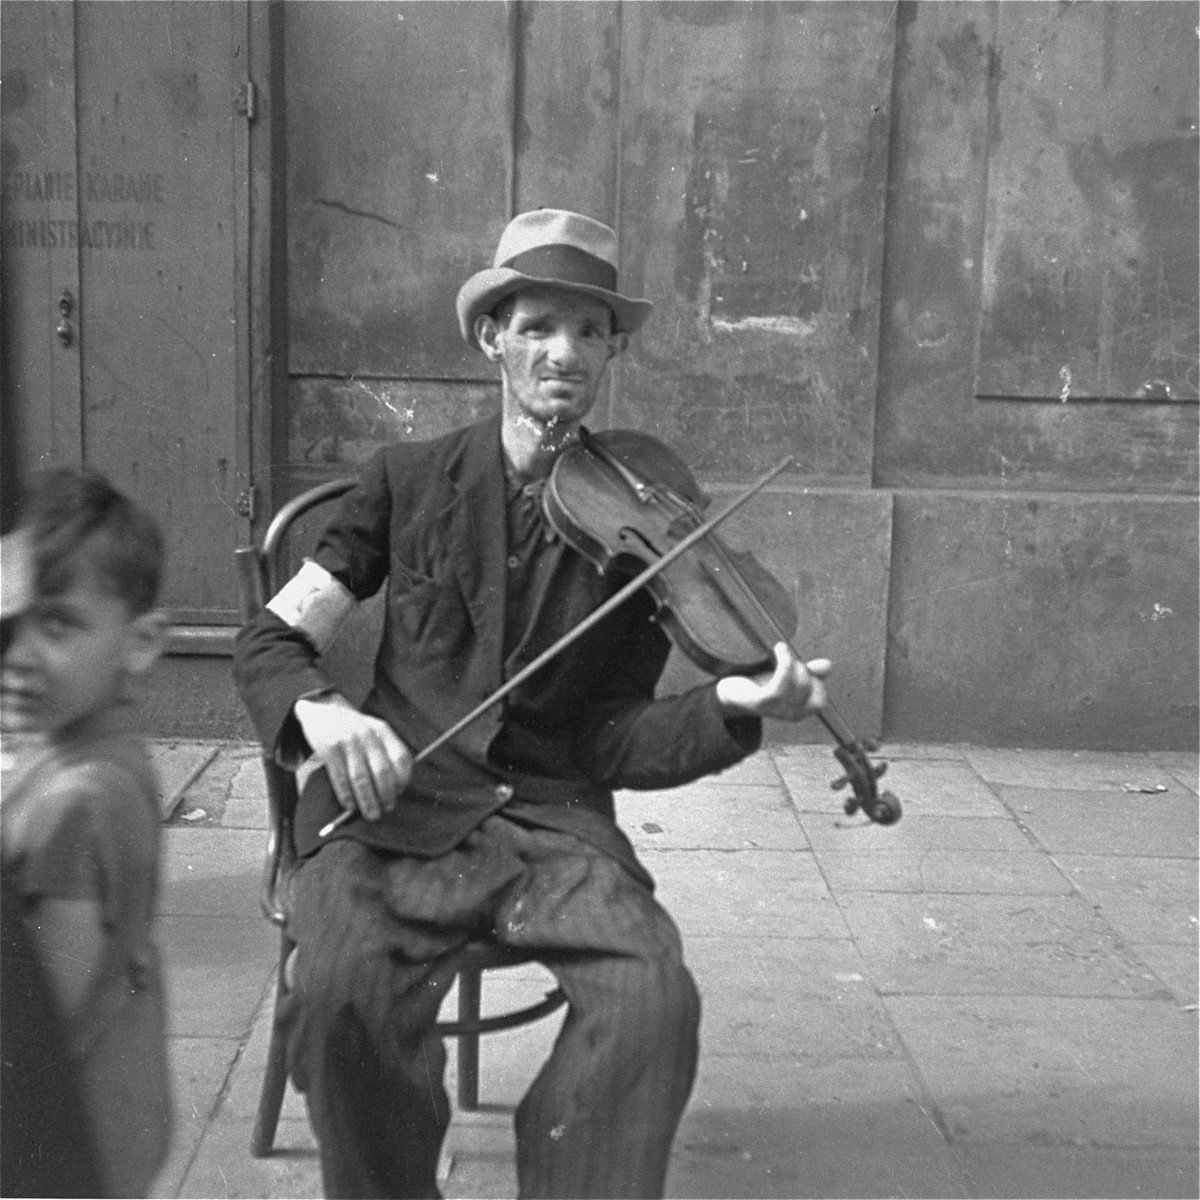 """A man on the street plays the violin in the hope of receiving food or money.    Joest's original caption reads:  """"This man played the same sound on his violin again and again.  His eyes followed me, but whether out of fear or because he hoped to receive a coin I do not know."""""""